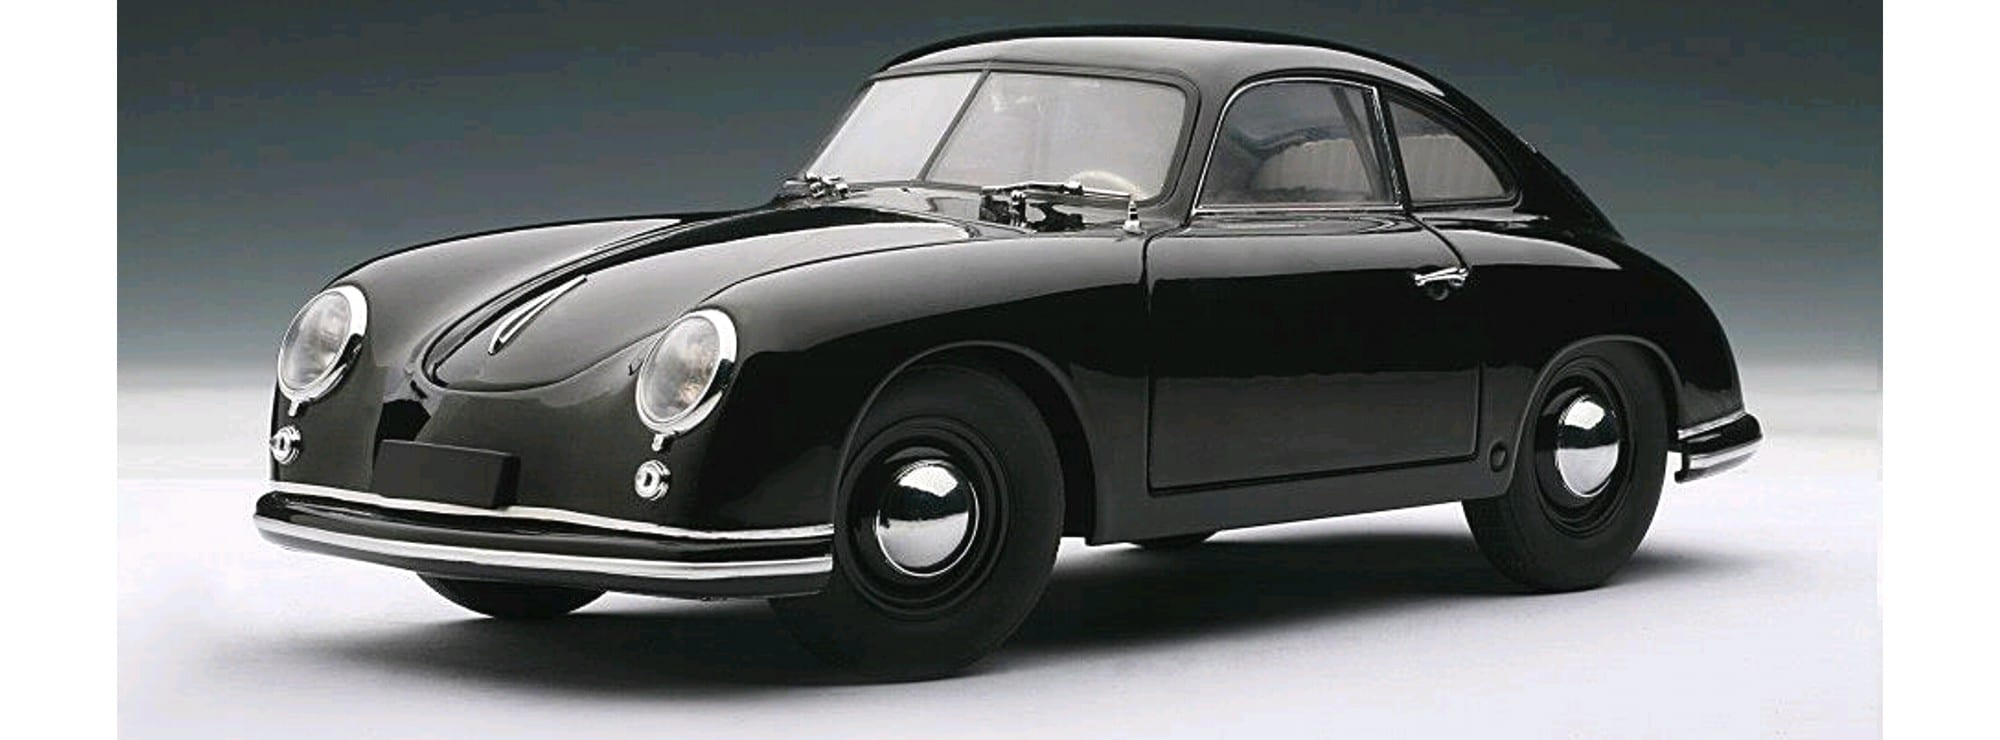 ausverkauft autoart 77946 porsche 356 coup 1950. Black Bedroom Furniture Sets. Home Design Ideas